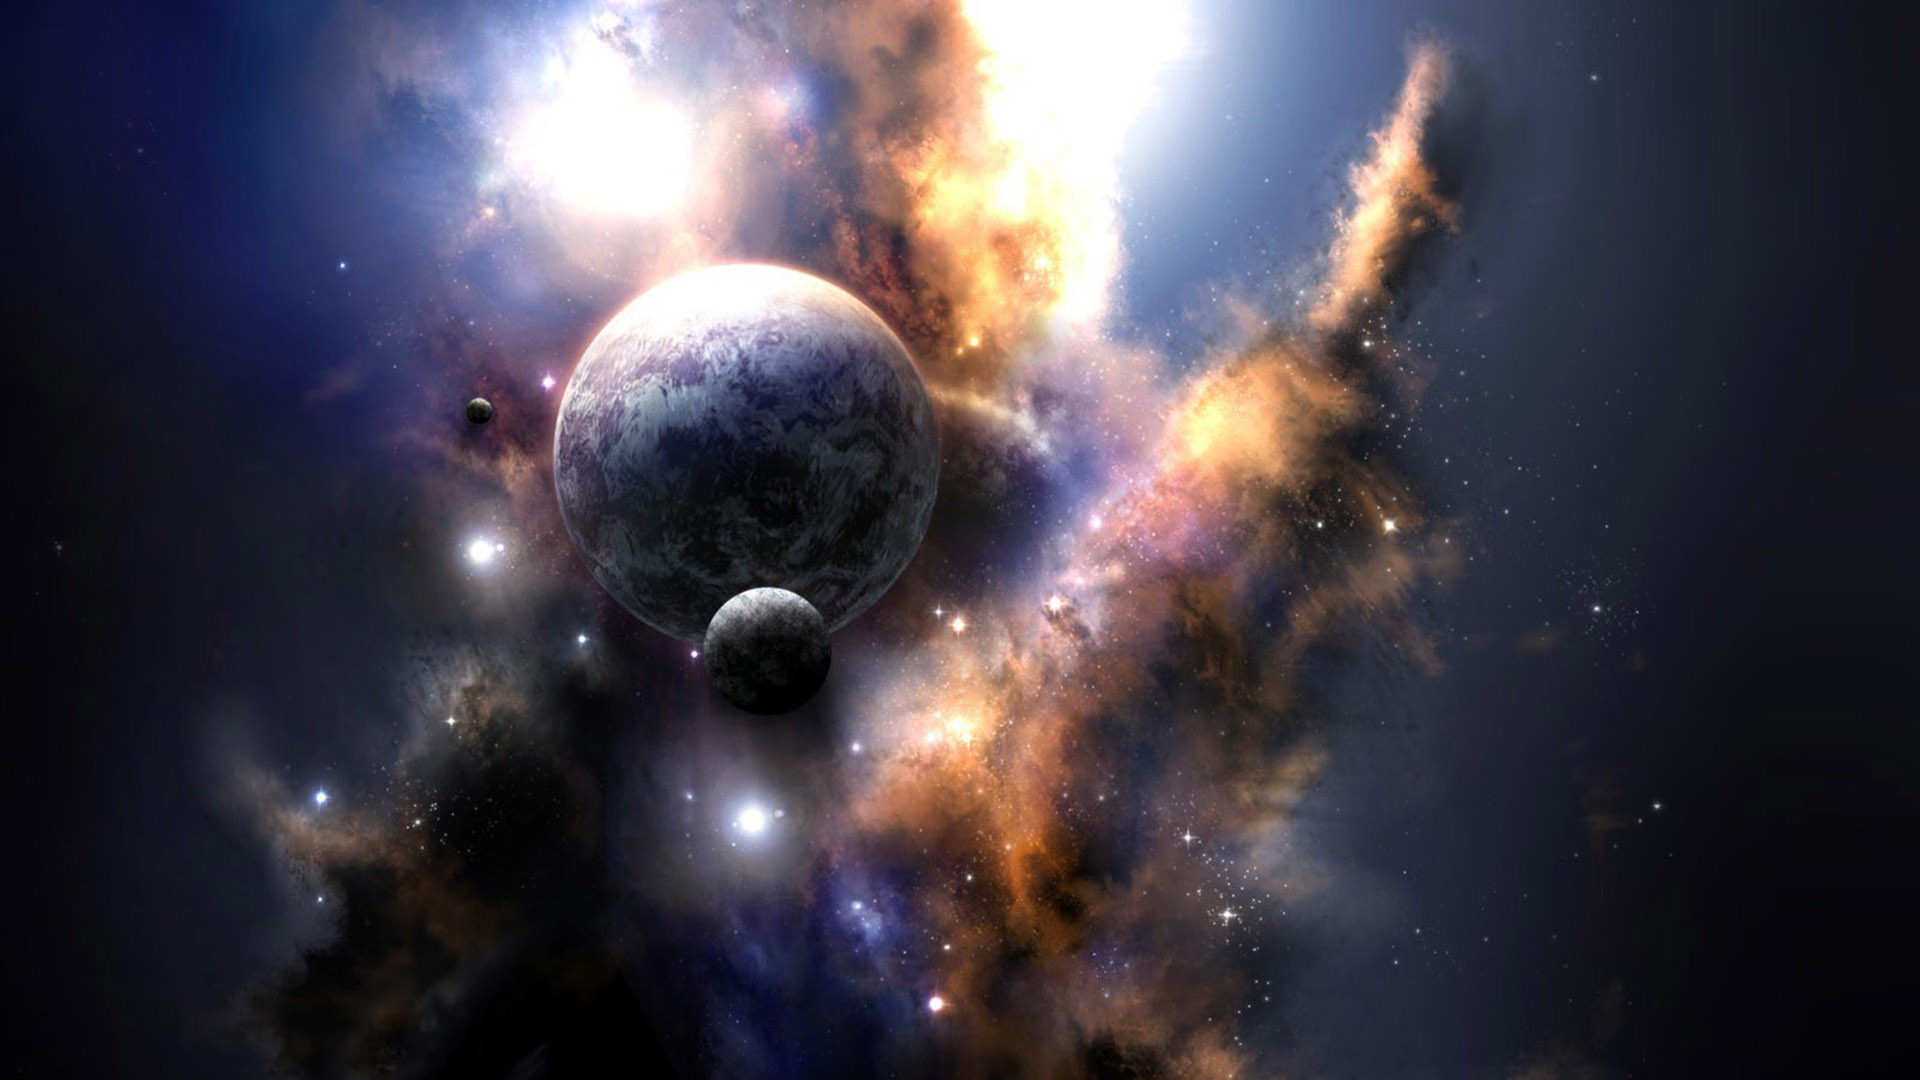 Art planet space wallpaper 1080p hd space wallpaper 1080p real space –  Outer Space Planets 19667